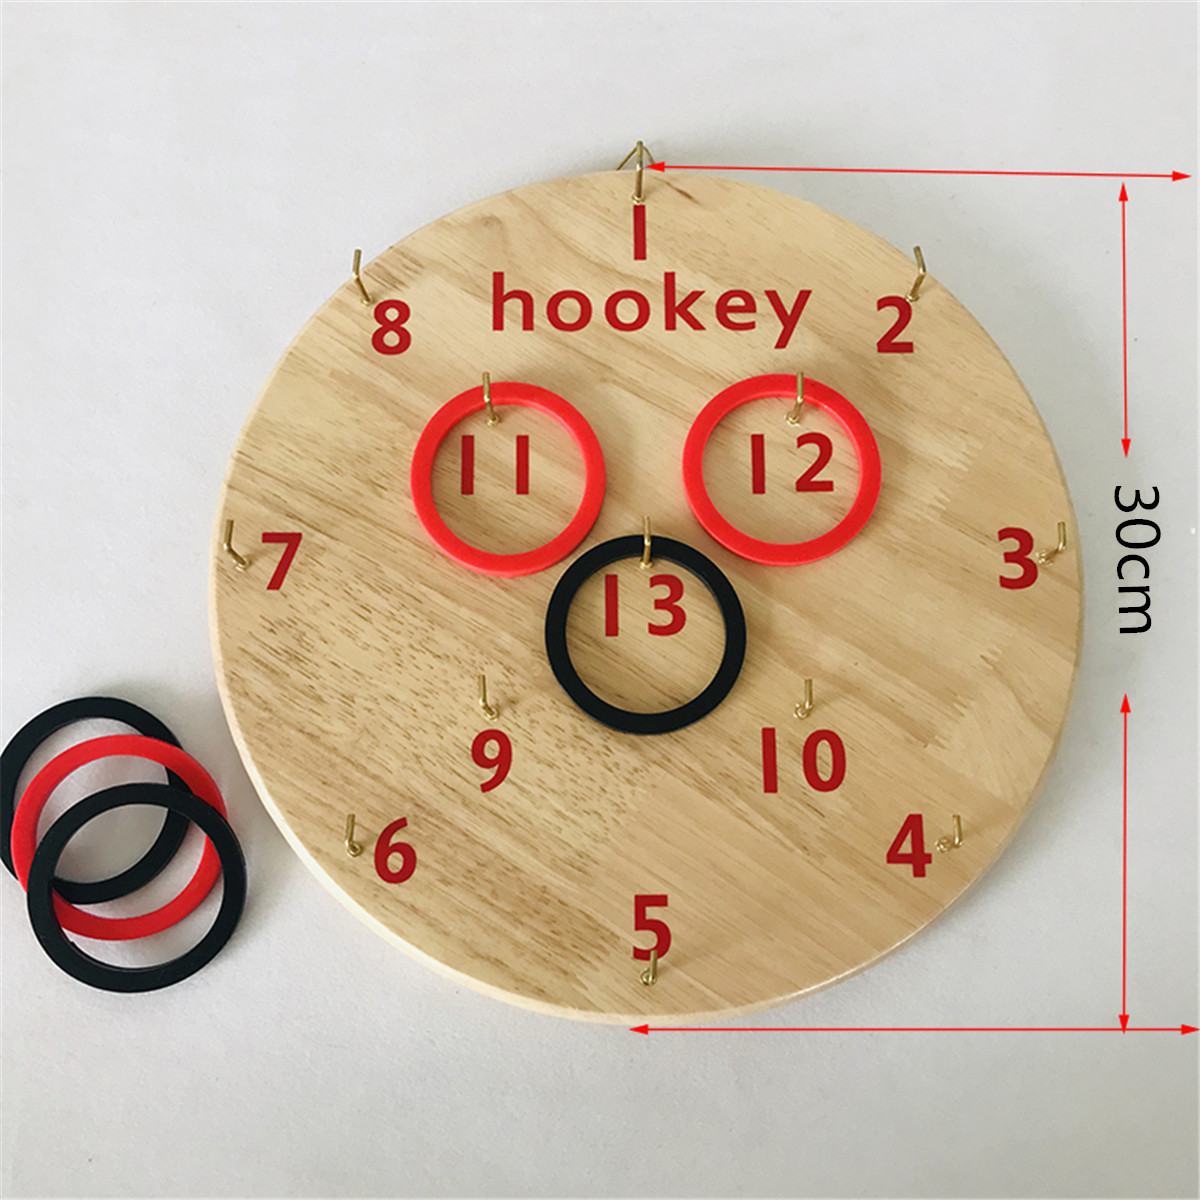 Funny Educational Games Wooden Board Hookey Ring Toss Game Disc Suspension Throwing Circle Play Toys Festival Party Supplies